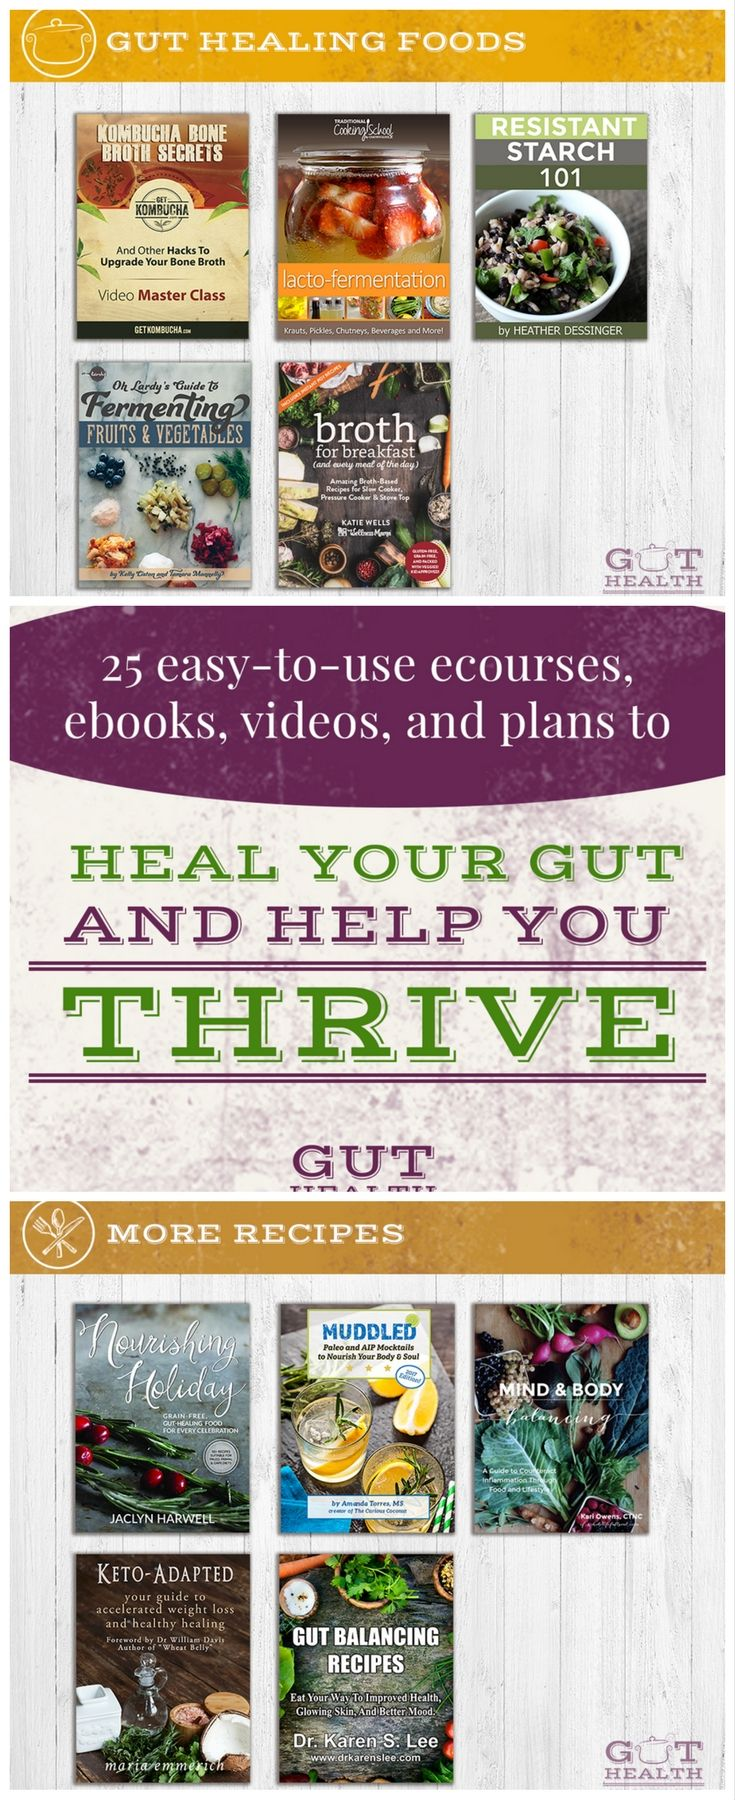 End your debilitating diarrhea, stomach pain, constipation, skin conditions and more. Simplify mealtimes with hundreds of delicious gut-healing recipes ...